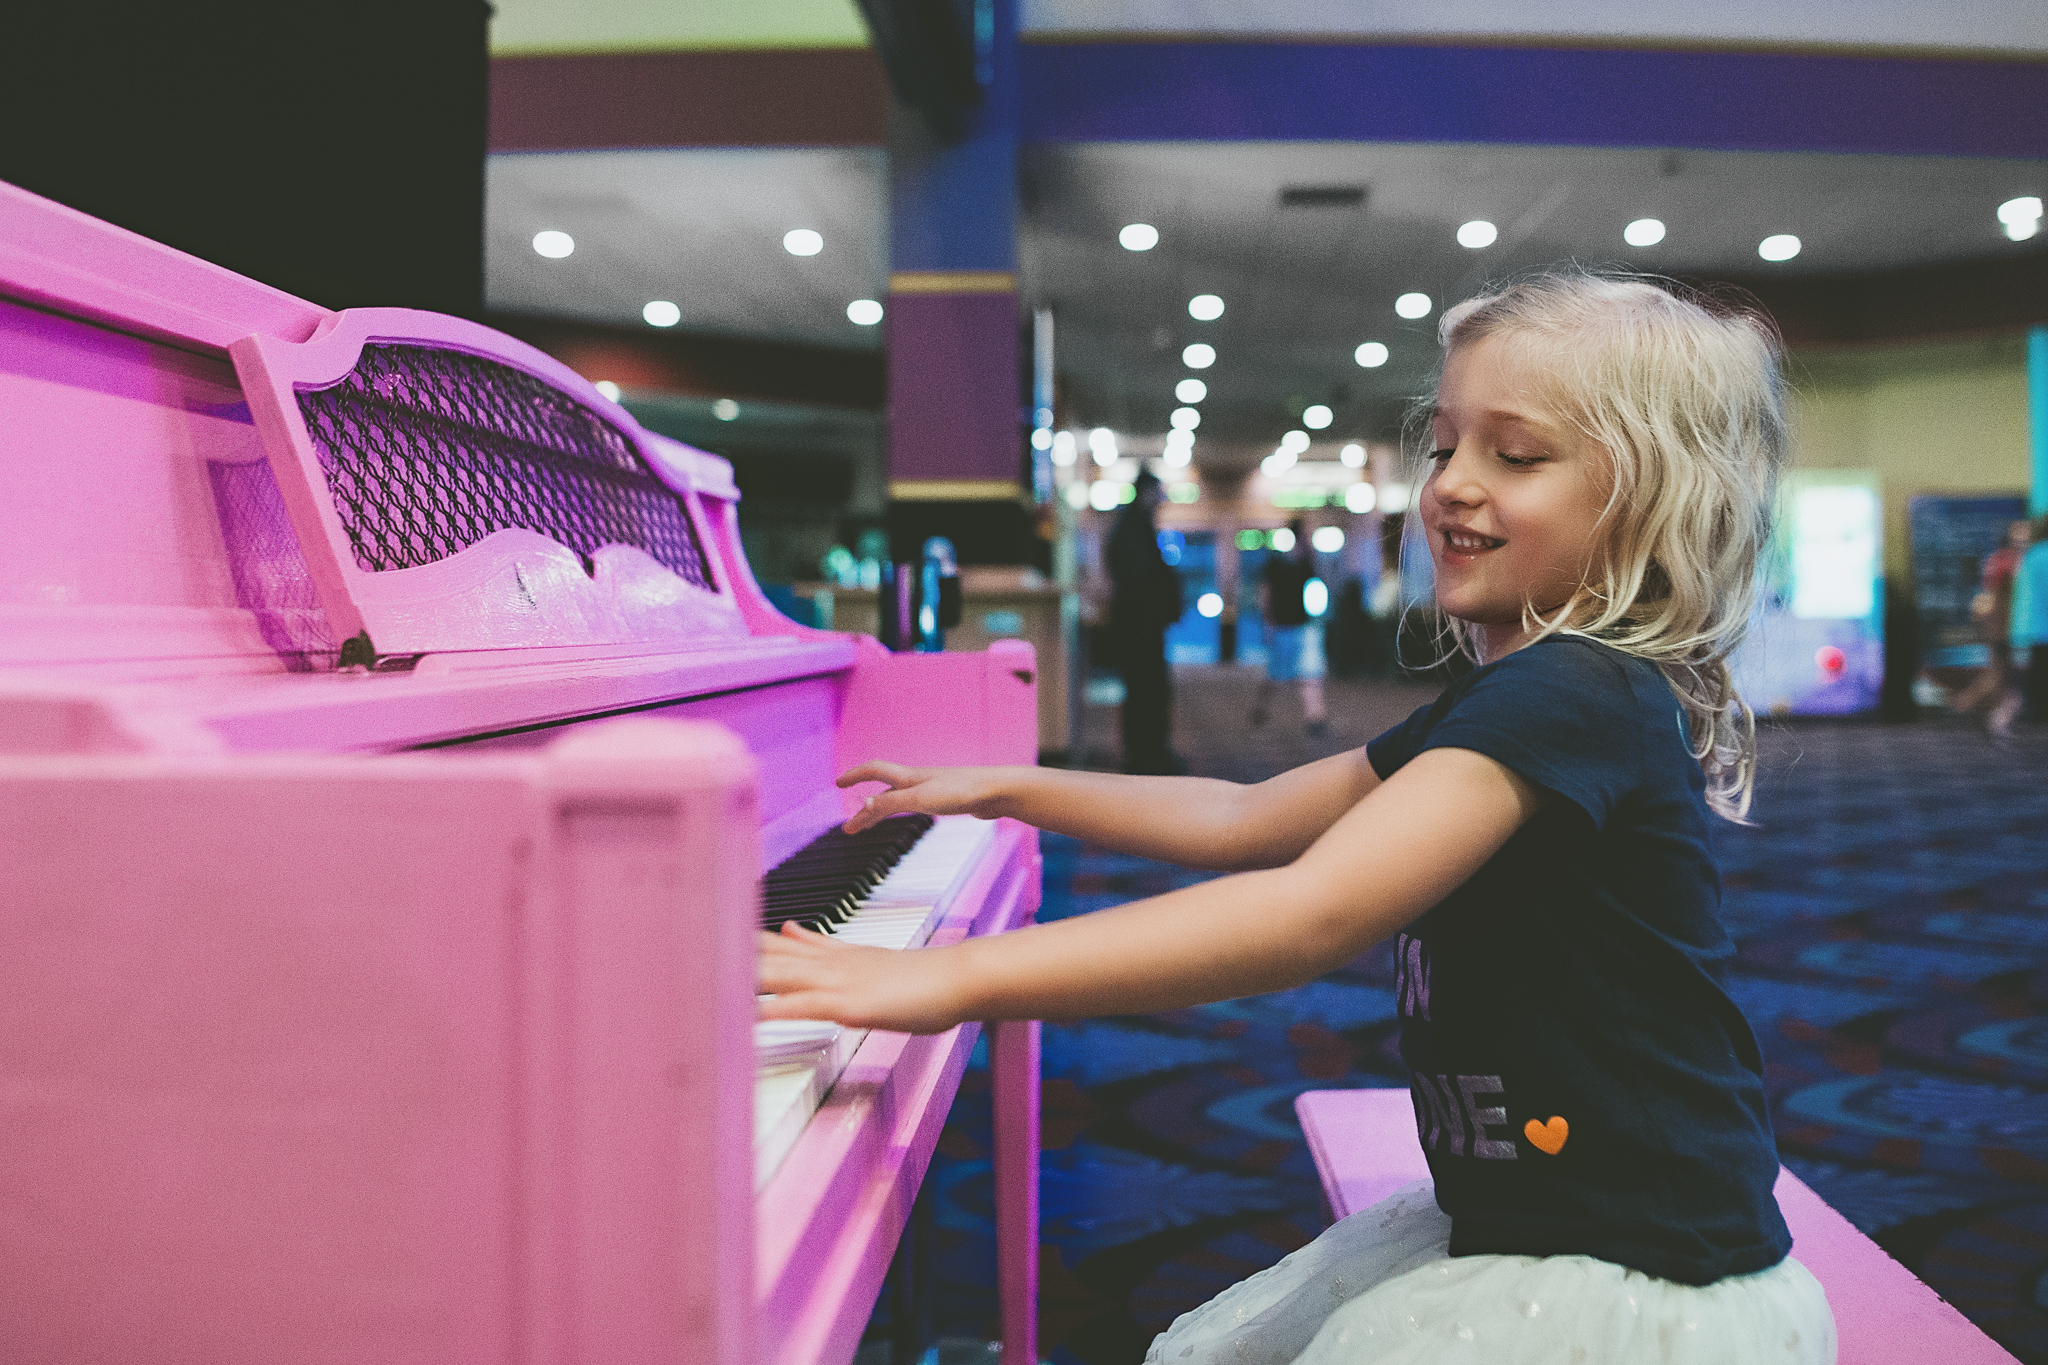 Hello-olivia-photography-long-lsland-family-children-documentary-photographer-childrens-at-island-16-pink-piano.jpg